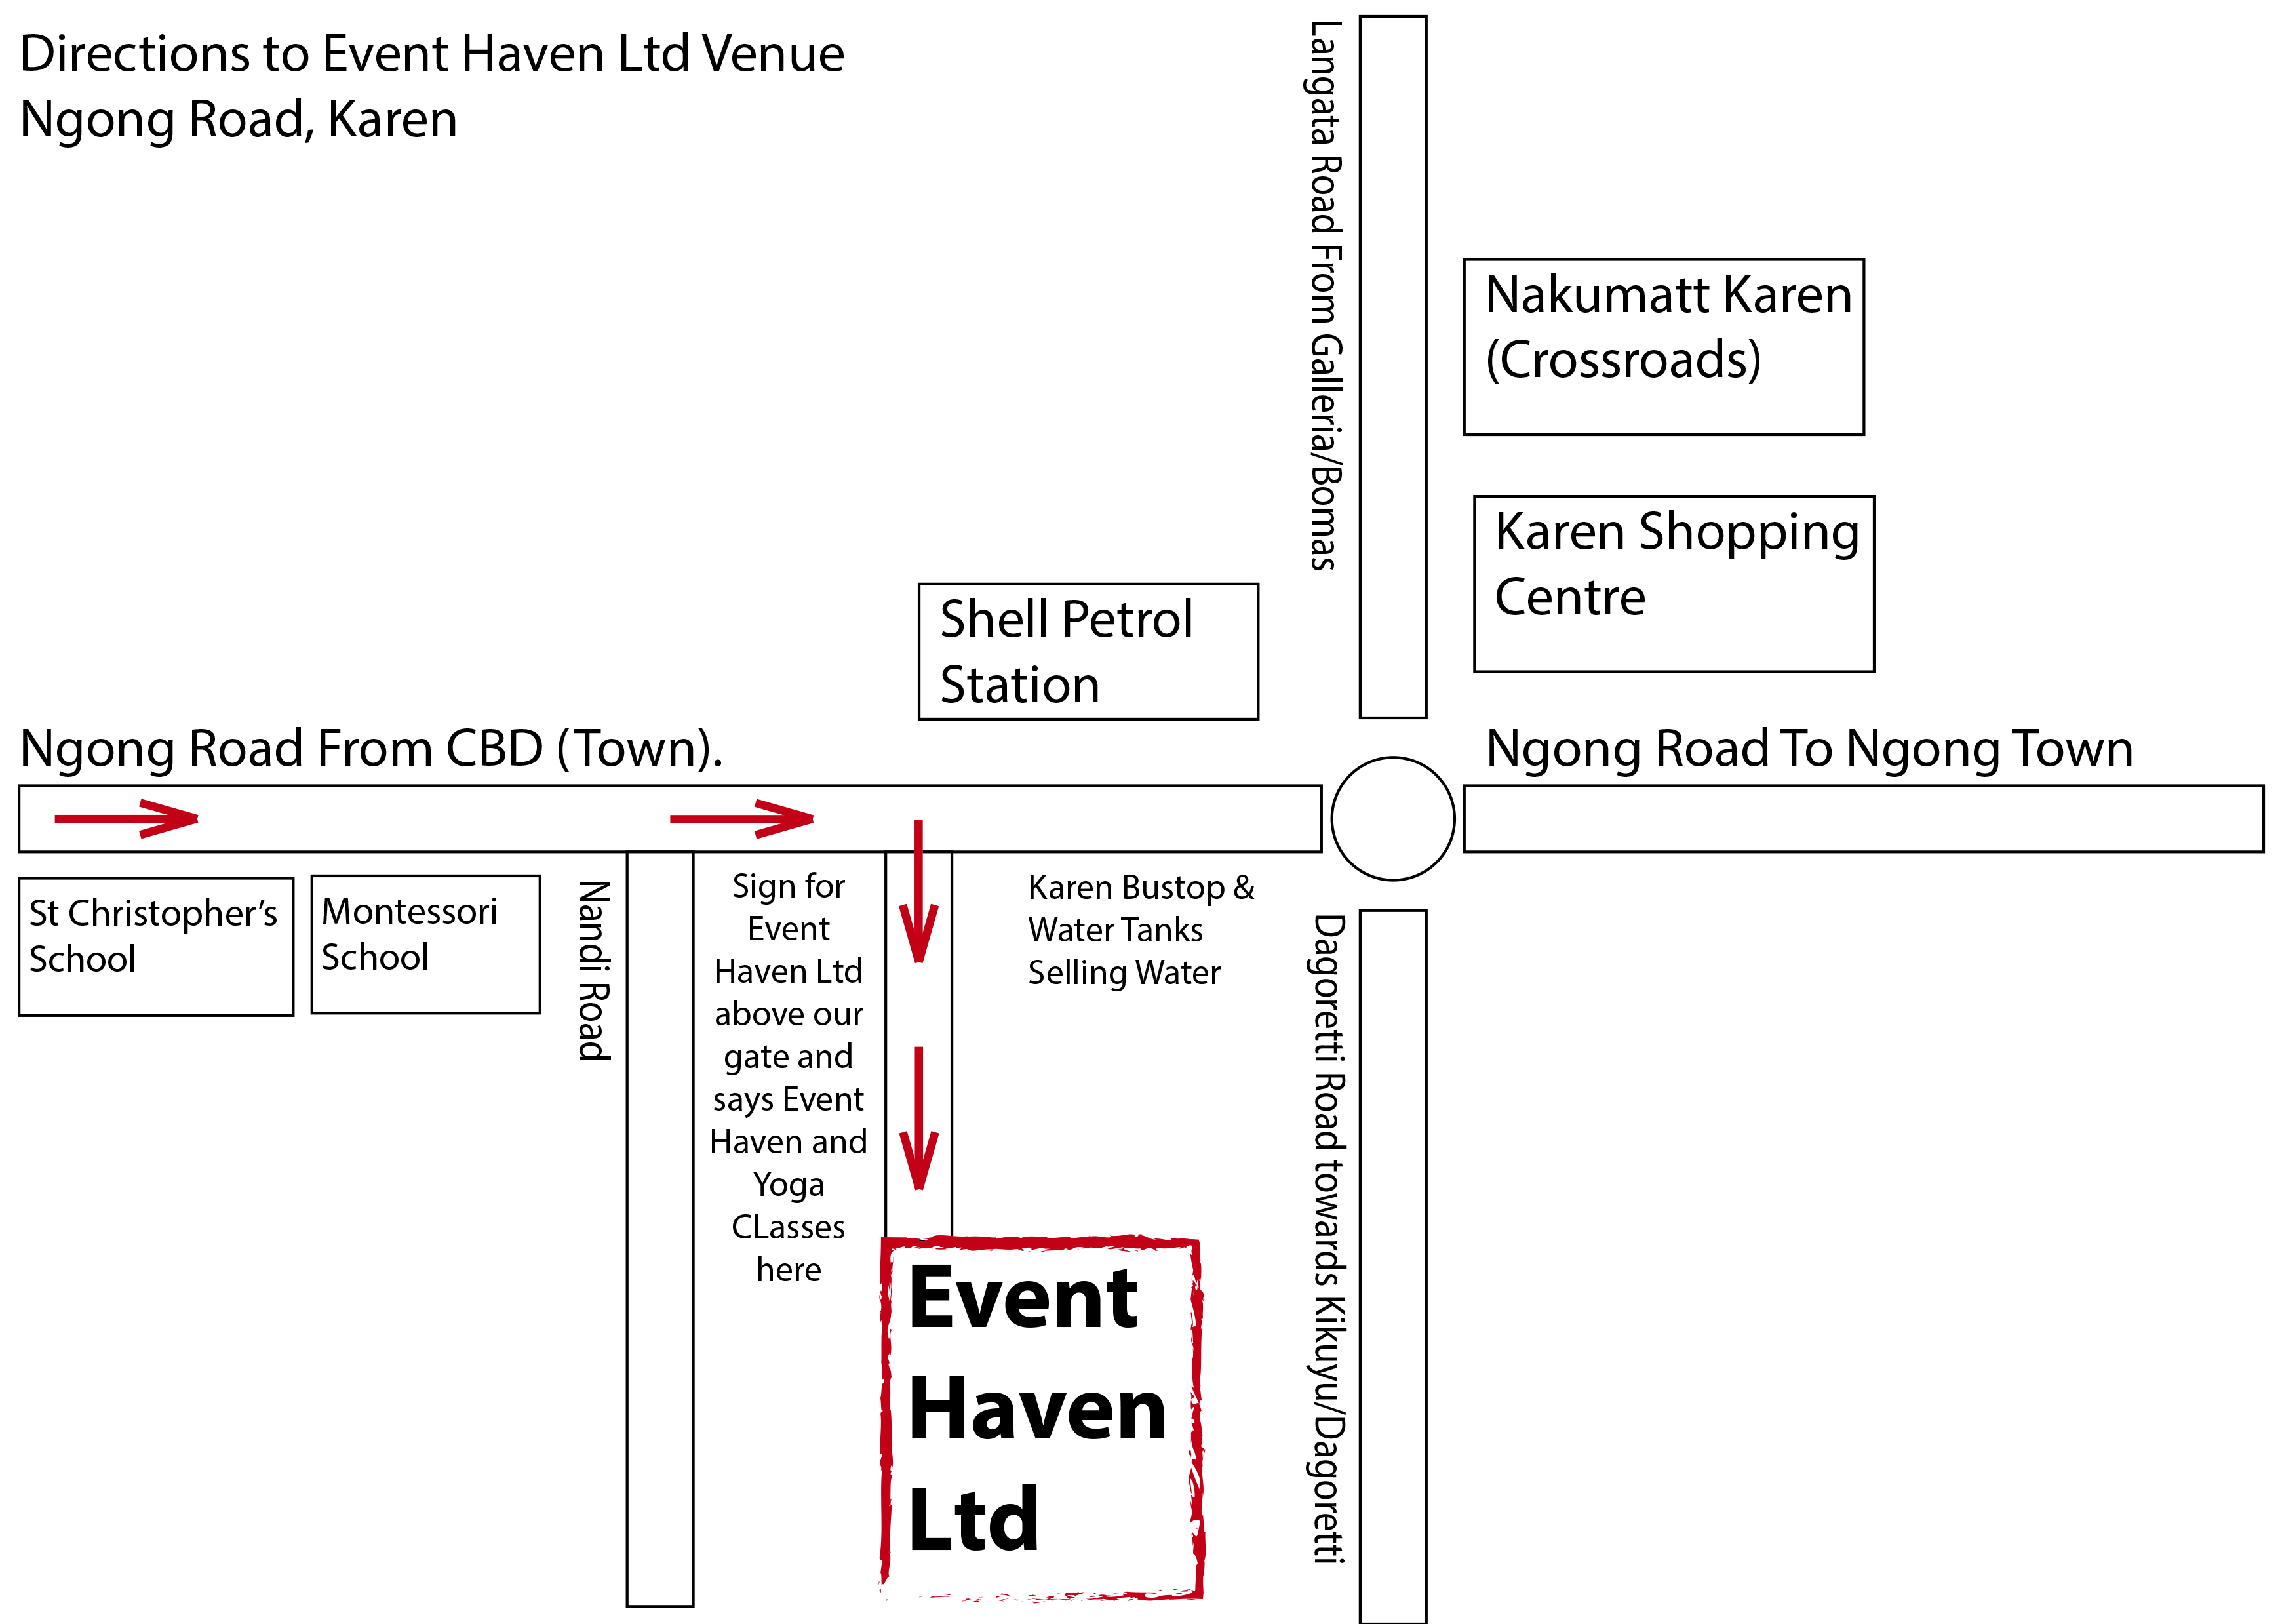 Event Haven